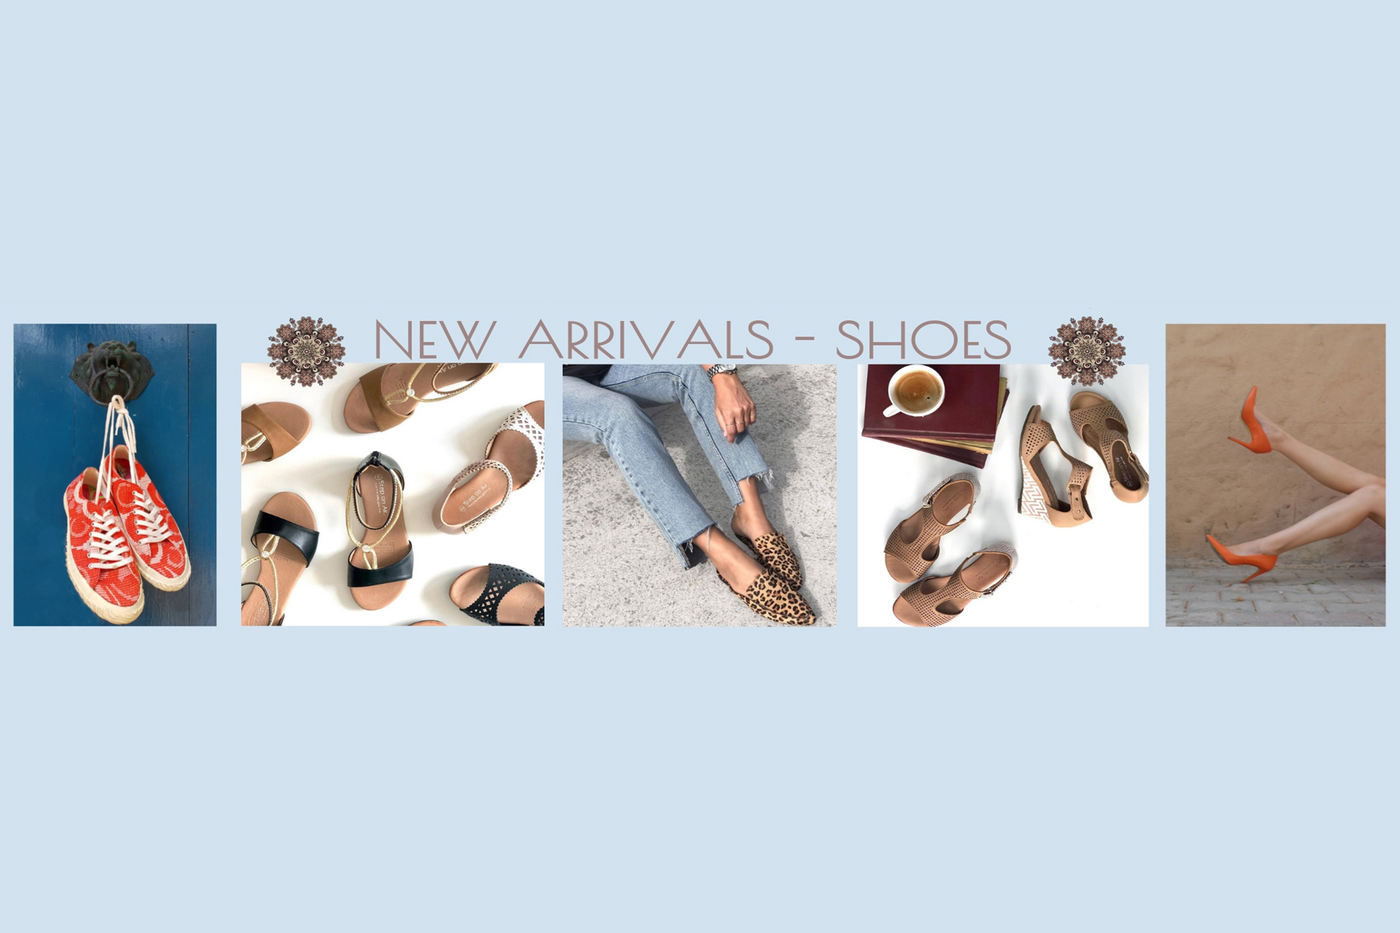 New Arrivals - Shoes